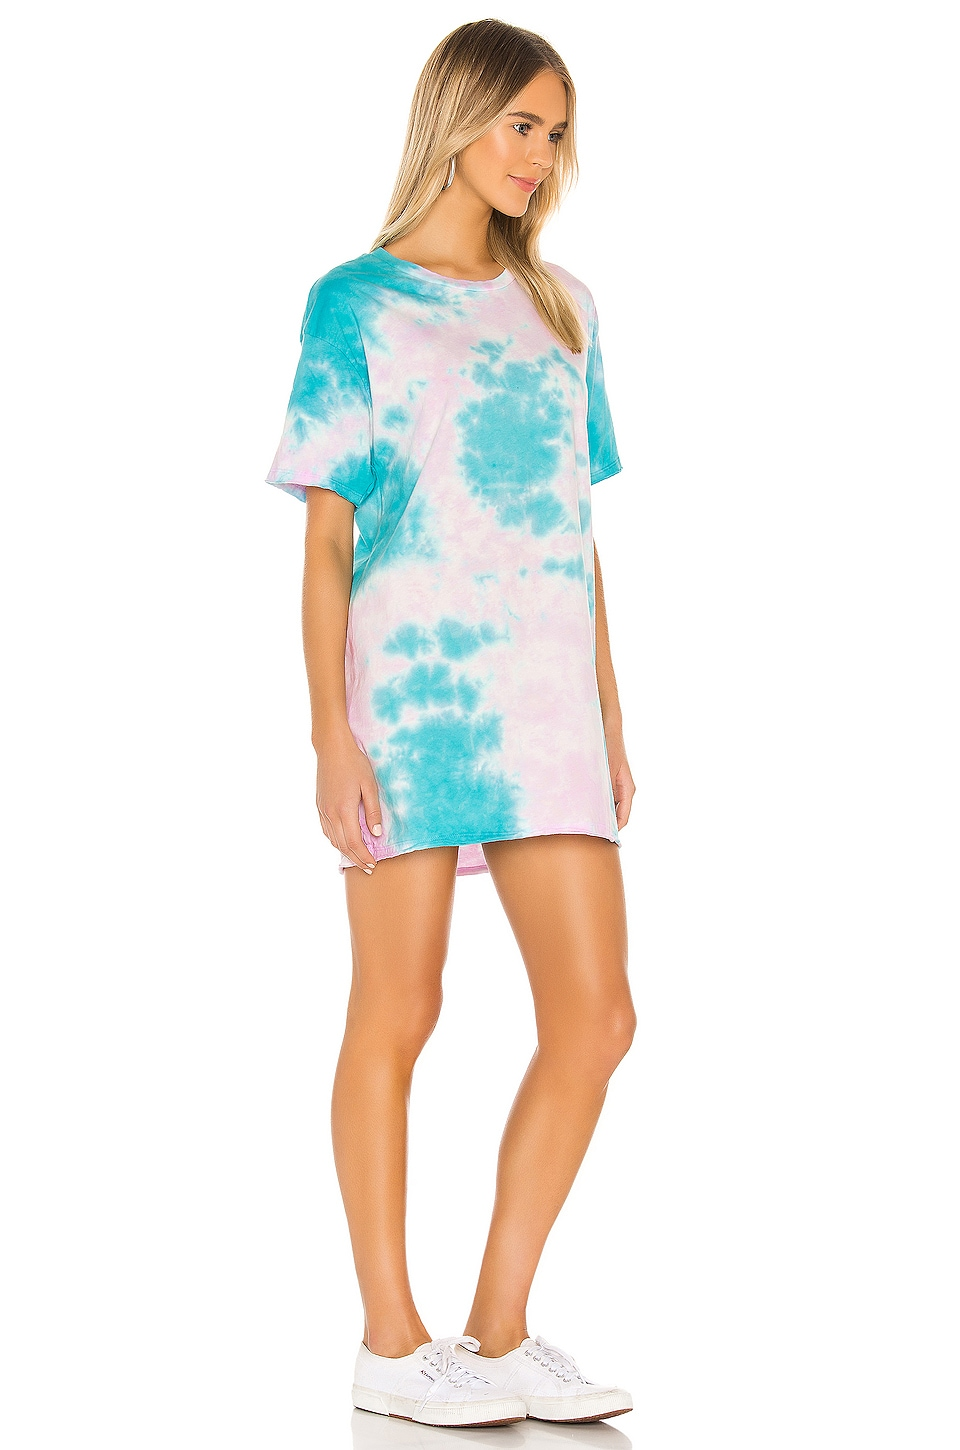 Burman Oversized T-Shirt Dress, view 2, click to view large image.